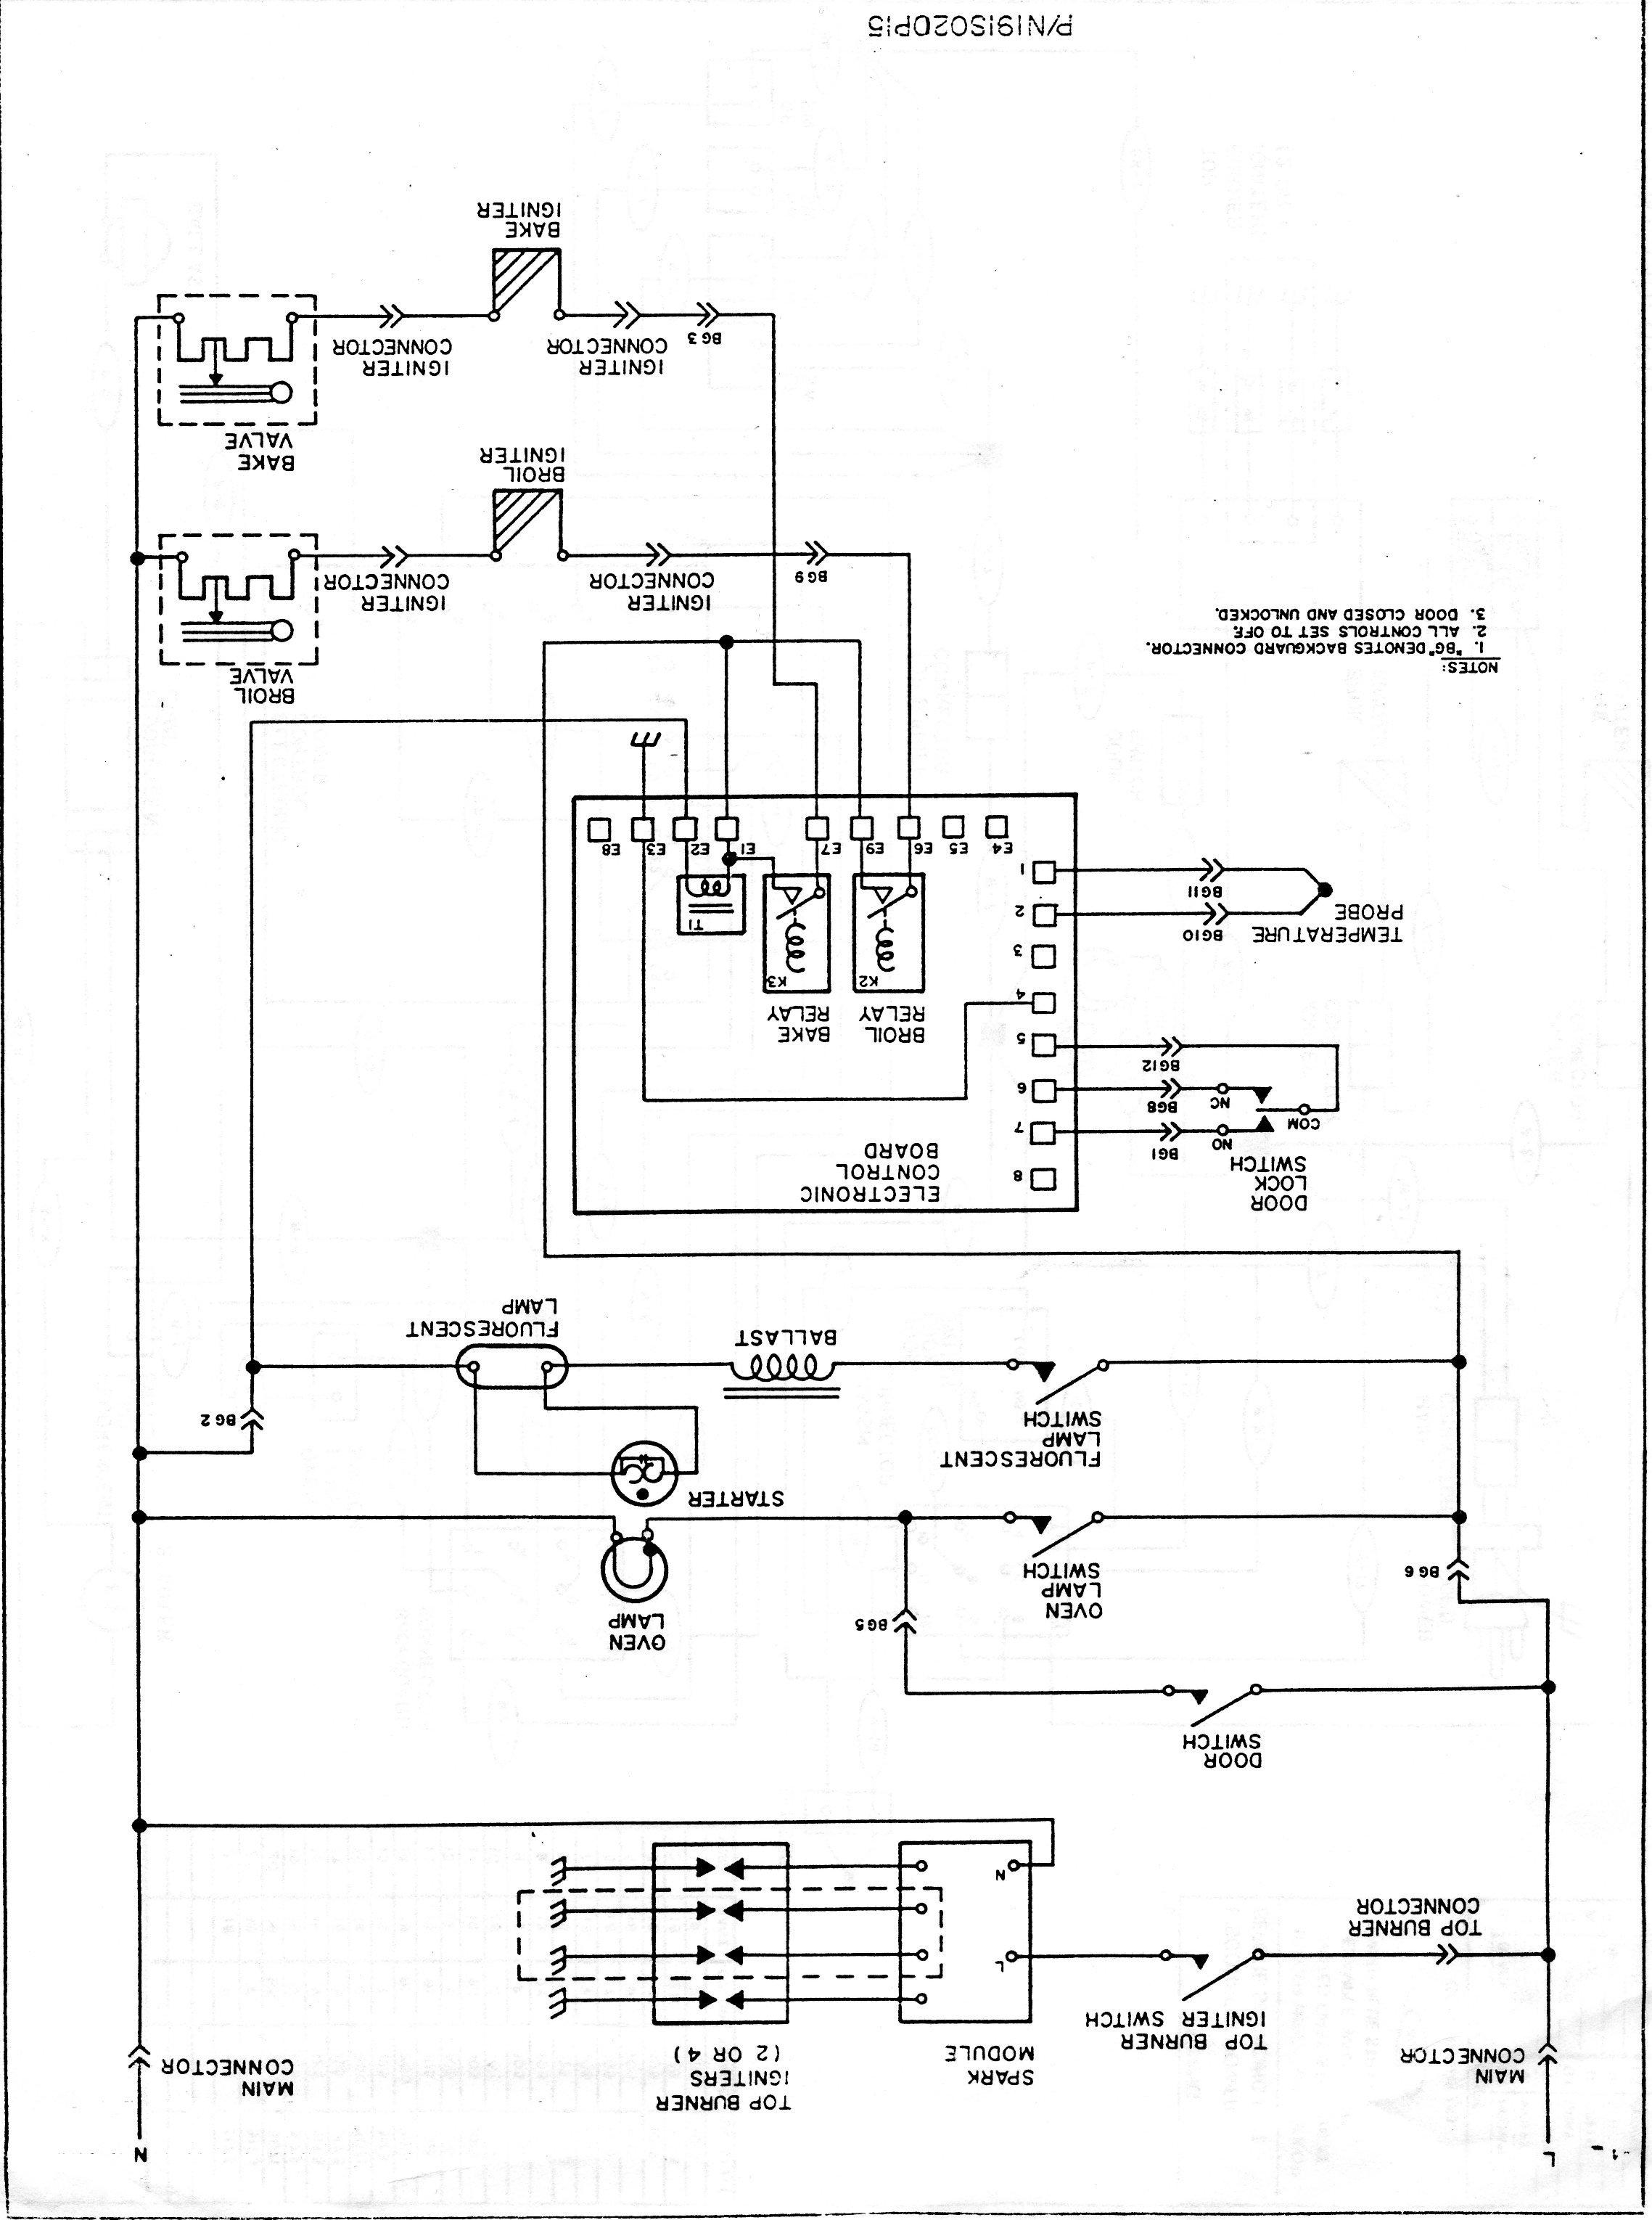 I have a Tappan range model number 30-3989-00/05 which I ... Tappan Range Wiring Diagrams on